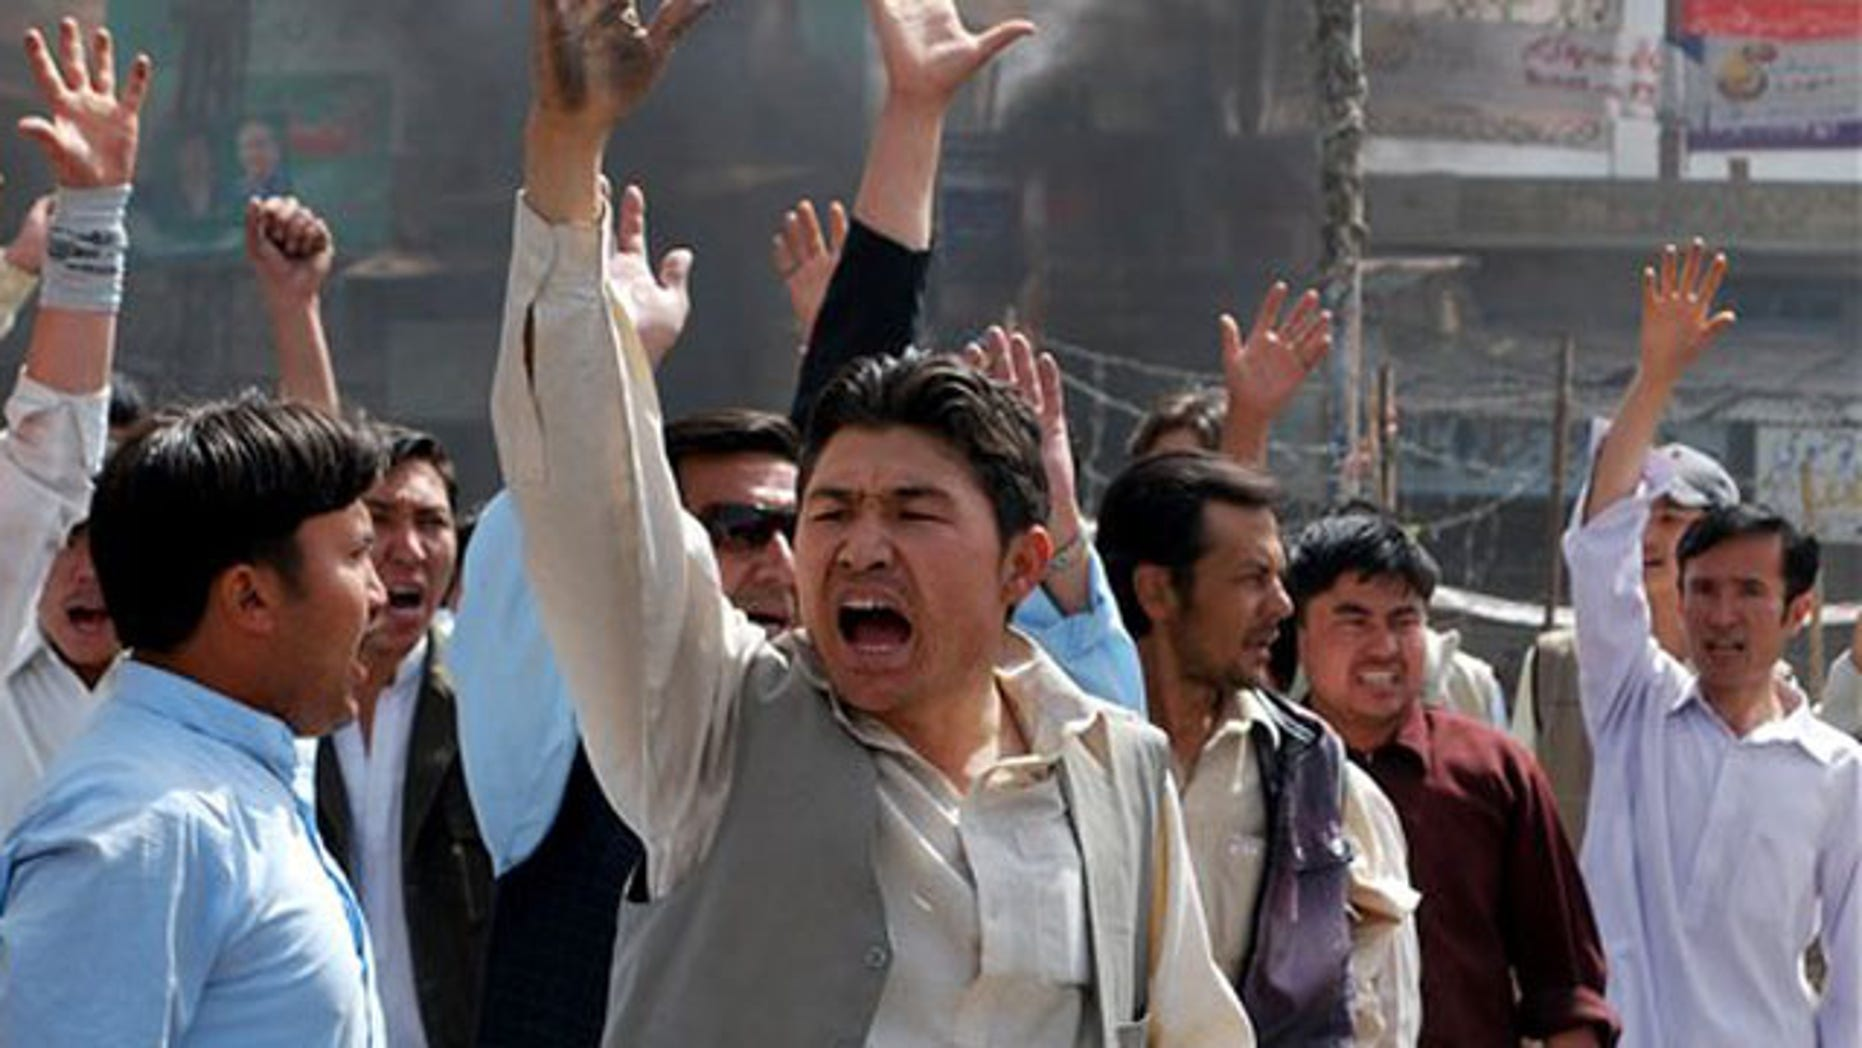 March 29, 2012: Pakistani protesters shout slogans against government to condemn killings in Quetta, Pakistan after an attack by a gunman who appeared to target local employees of the United Nations Food and Agriculture Organization, officials said.